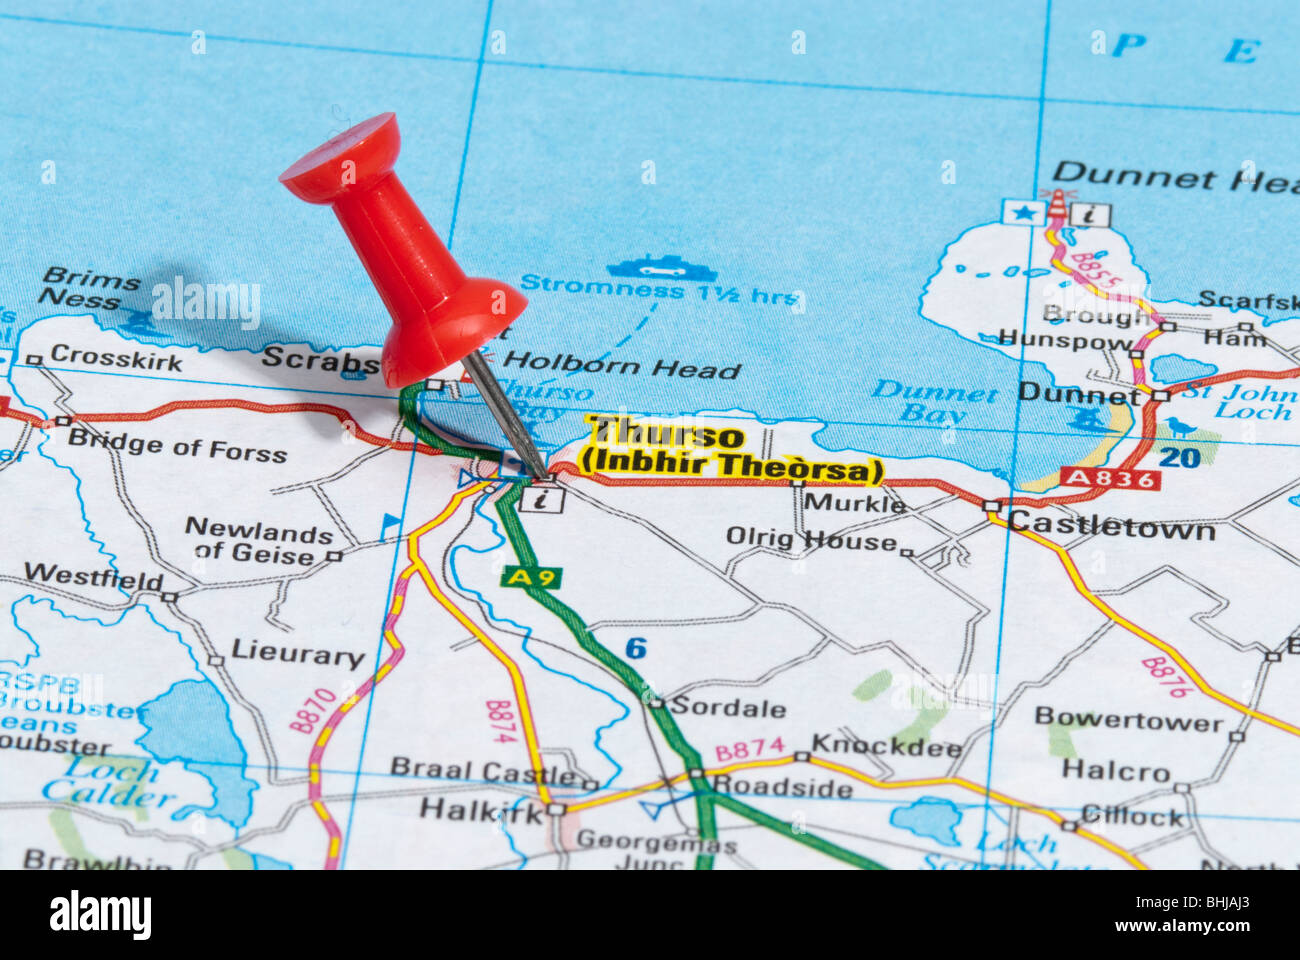 red map pin in road map pointing to city of Thurso - Stock Image